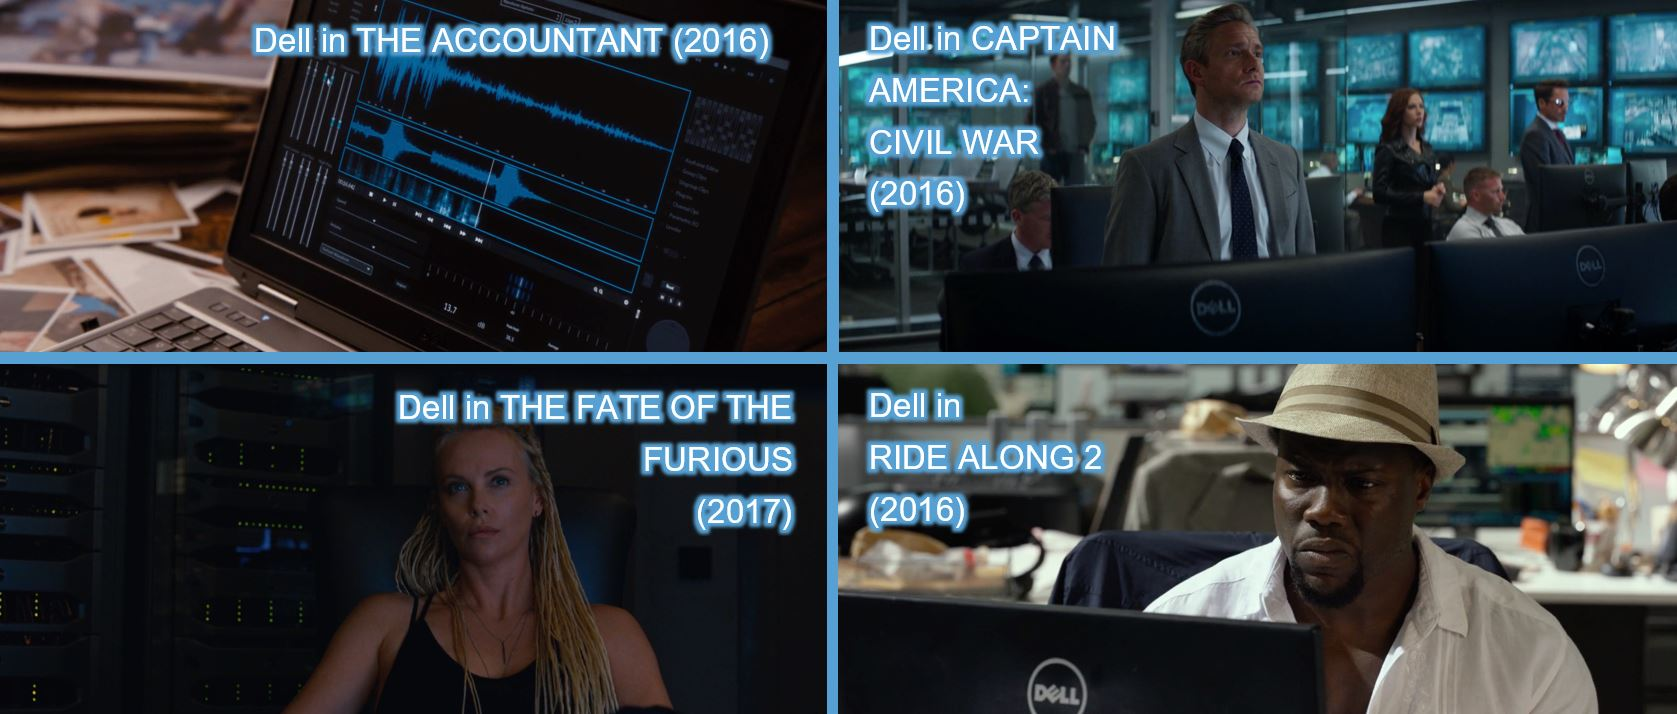 Dell spiderman spider-man homecoming product placement concave brand tracking brand integration makreting advertising the fate of the furious ride along 2 the accountant